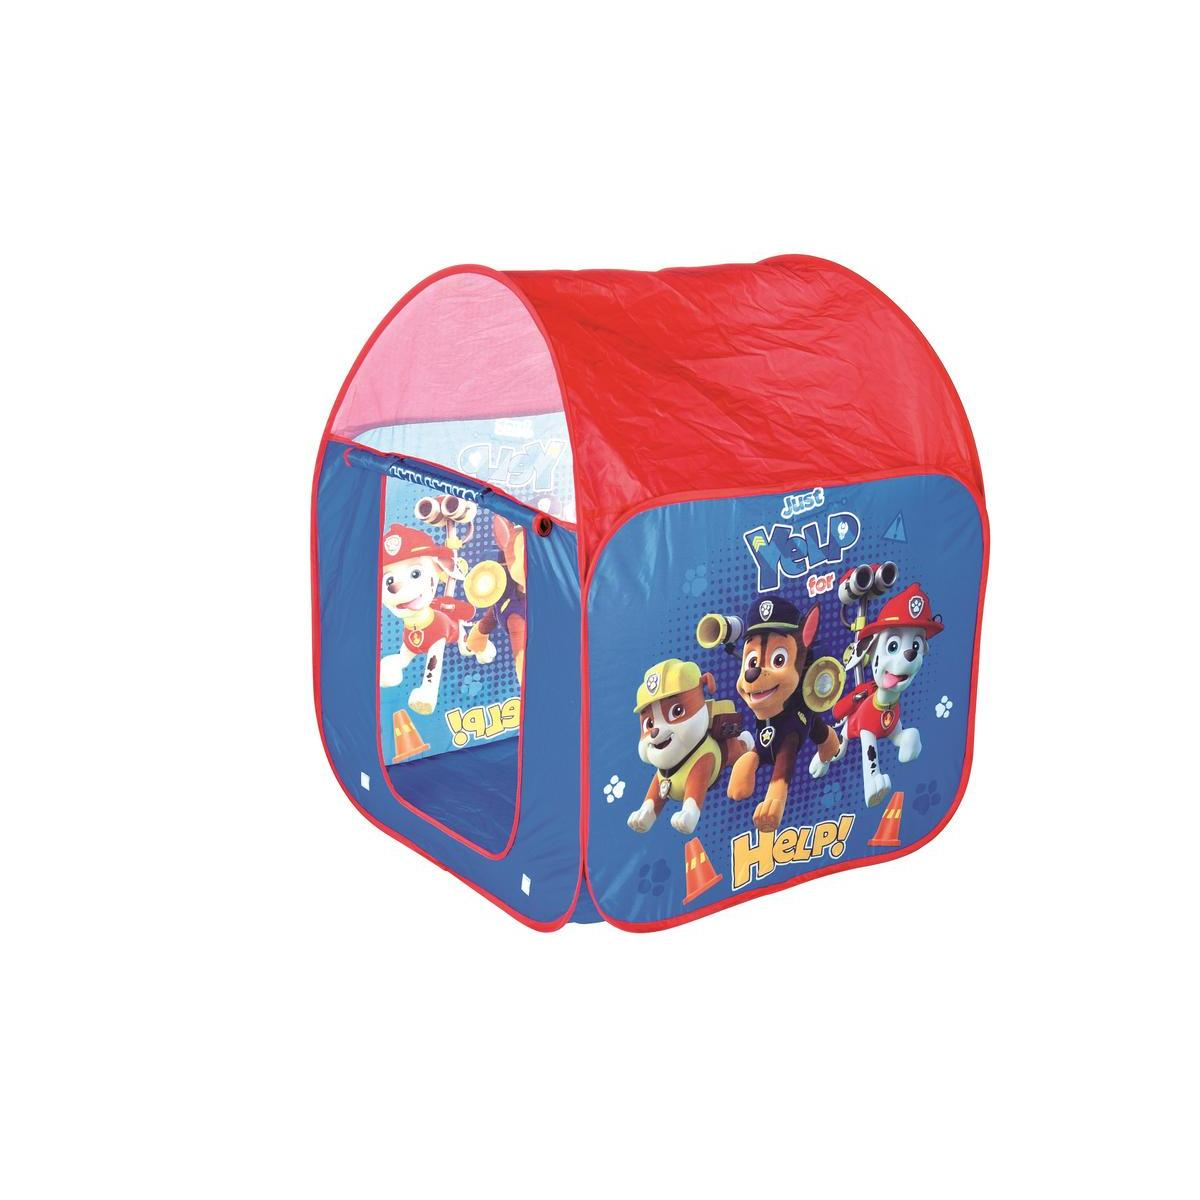 tent pop up multicolore jeux d